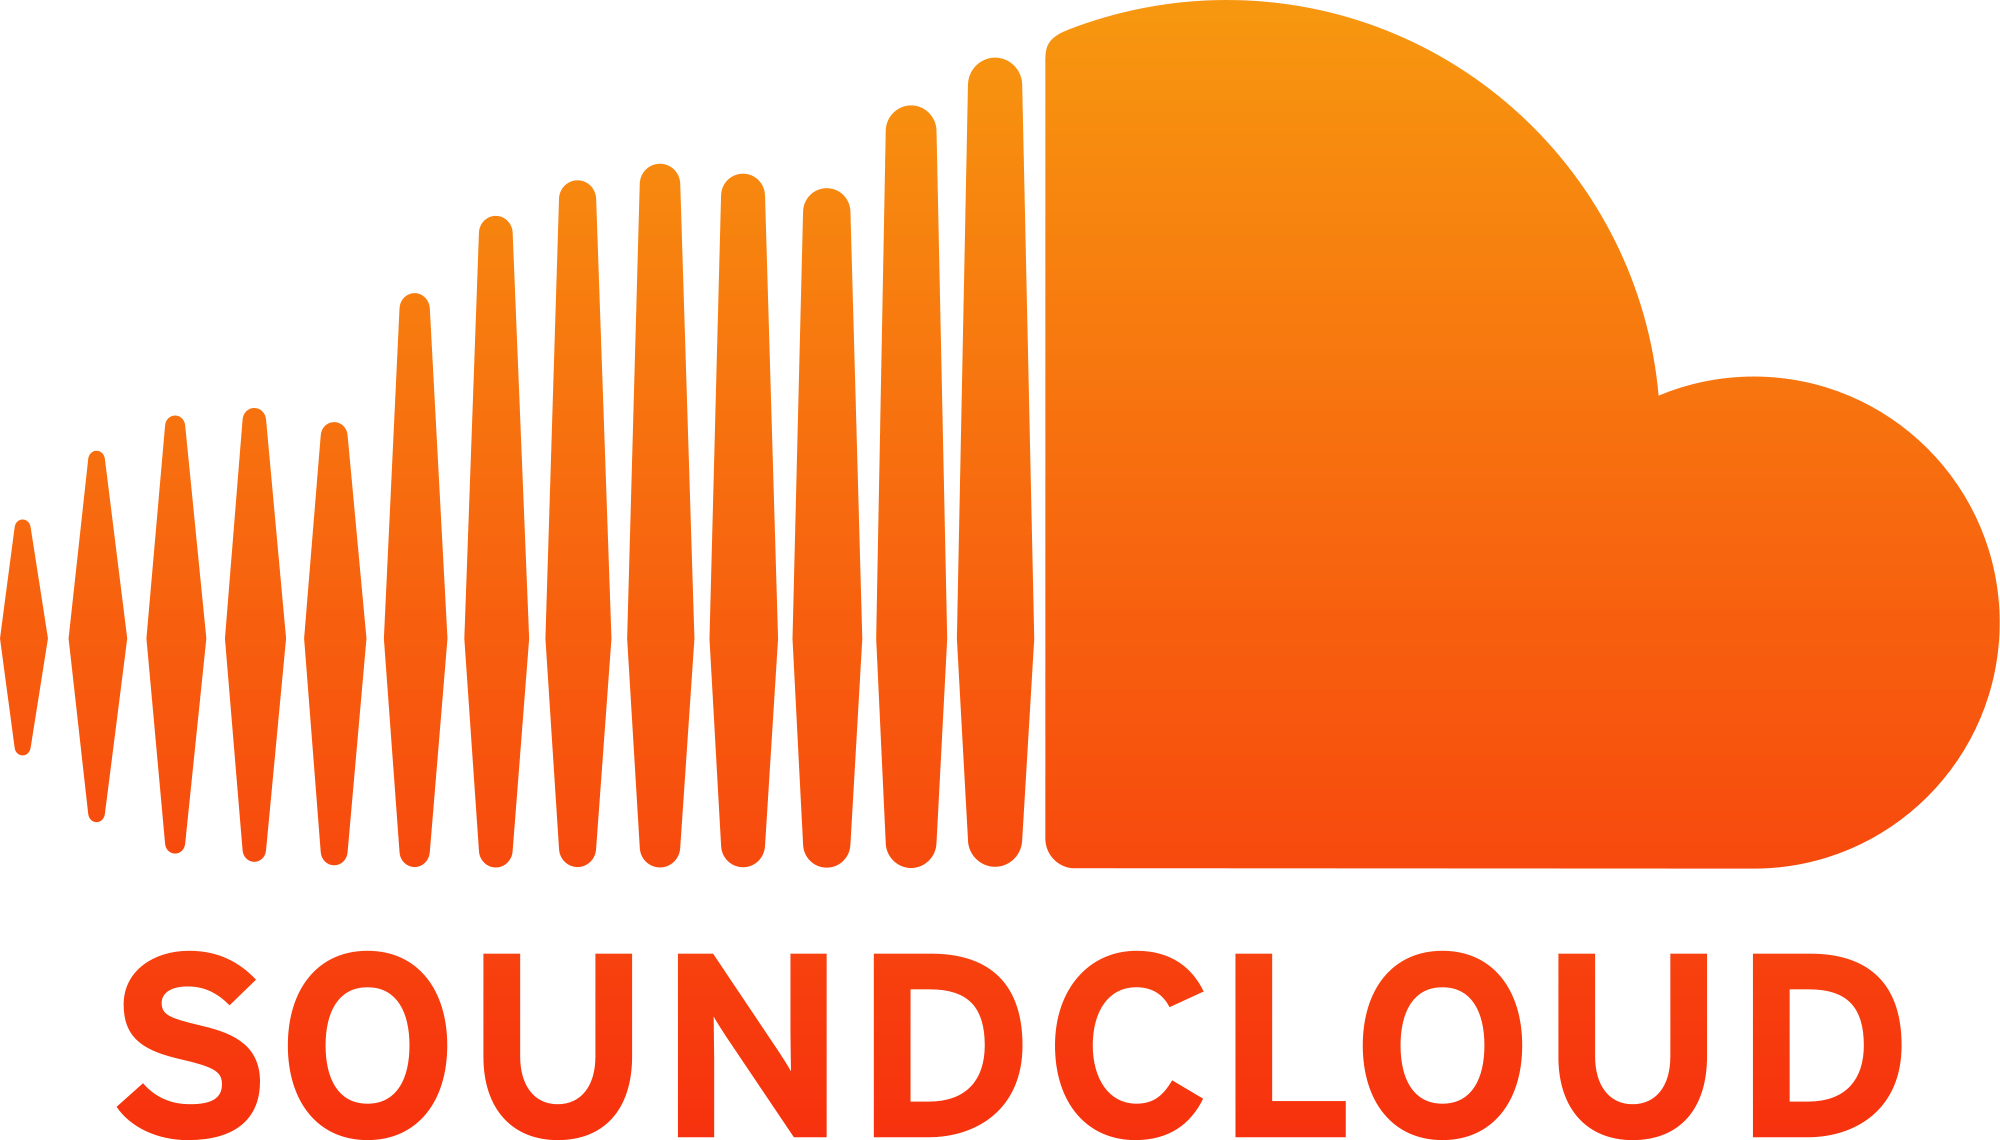 Soundcloud Icon Transparent & PNG Clipart Free Download.